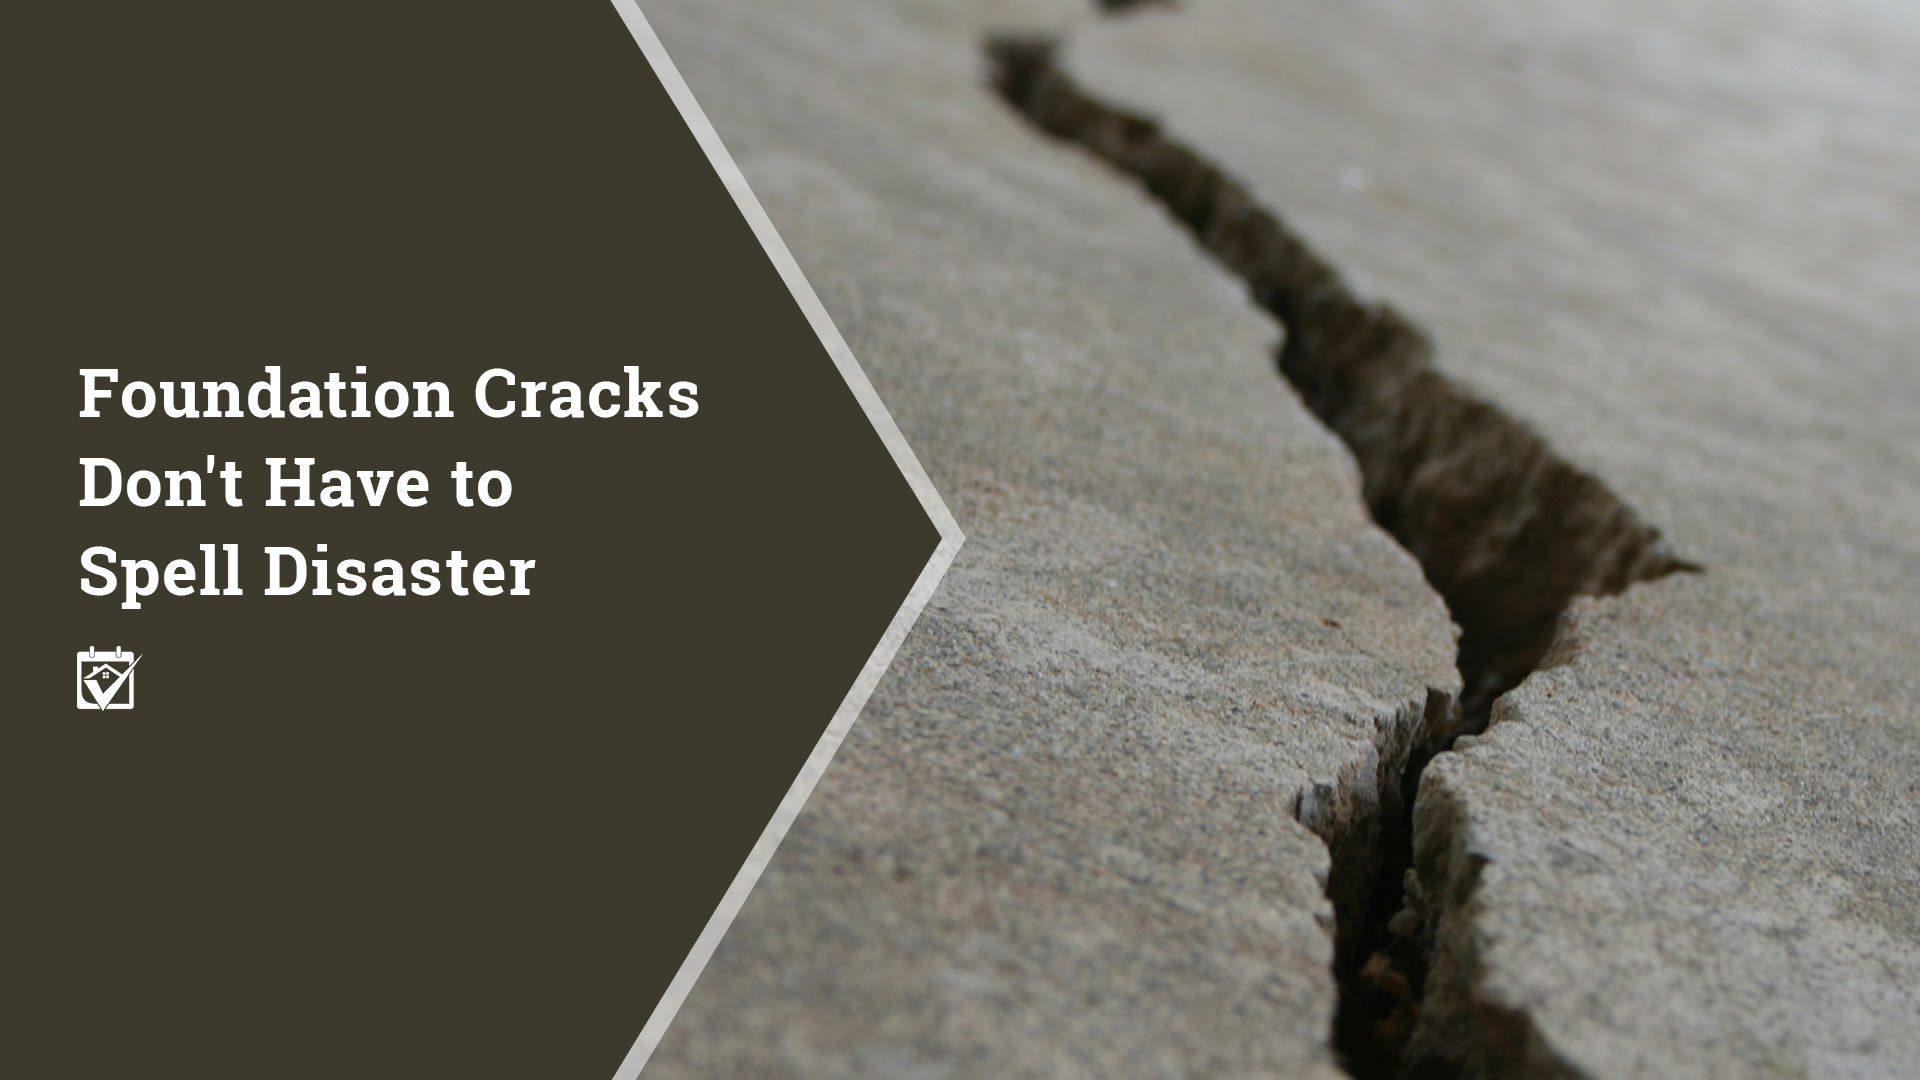 Foundation Cracks Don't Have to Spell Disaster